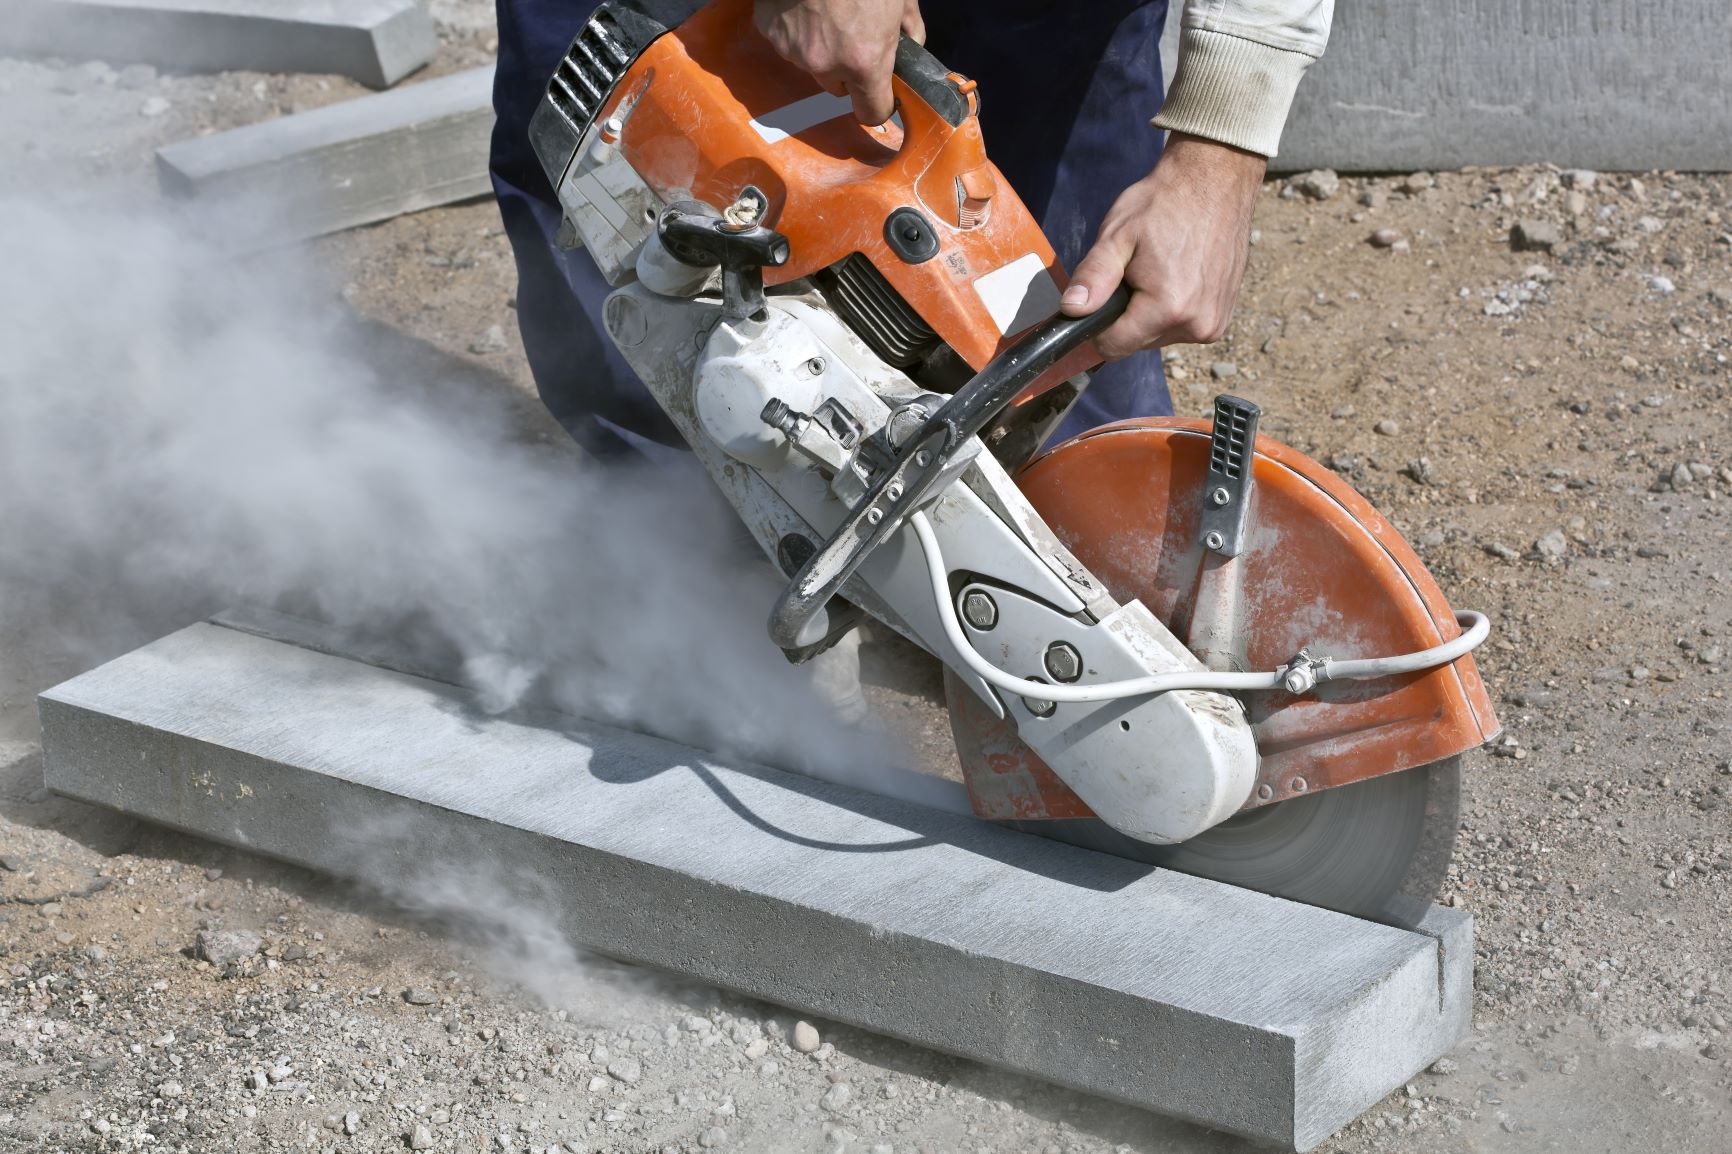 Washington is Cracking Down on Respirable Silica Exposure. Is Your Company Prepared?